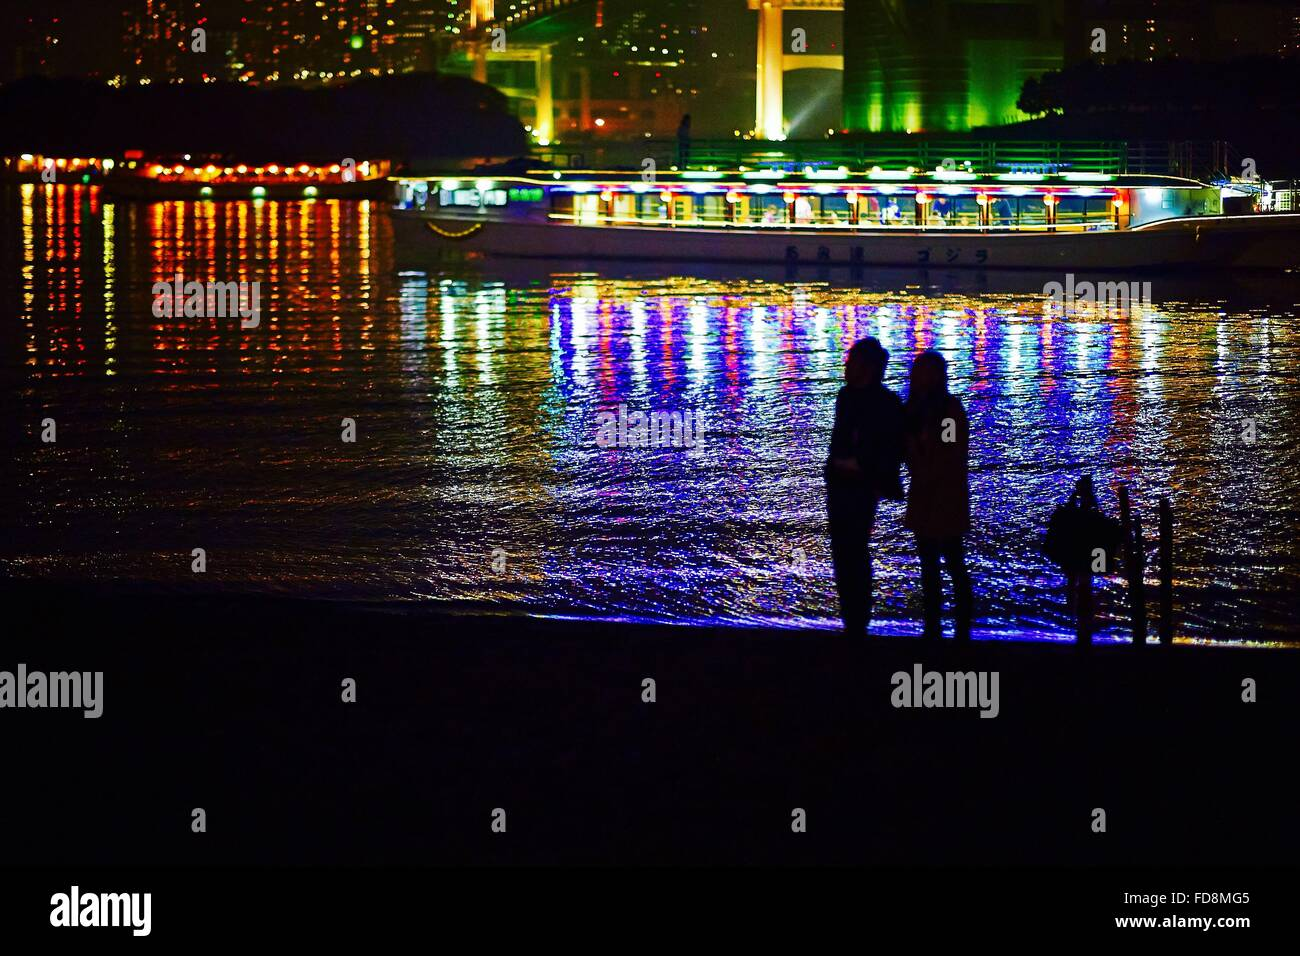 Silhouette People Standing By River With City Reflections At Night - Stock Image